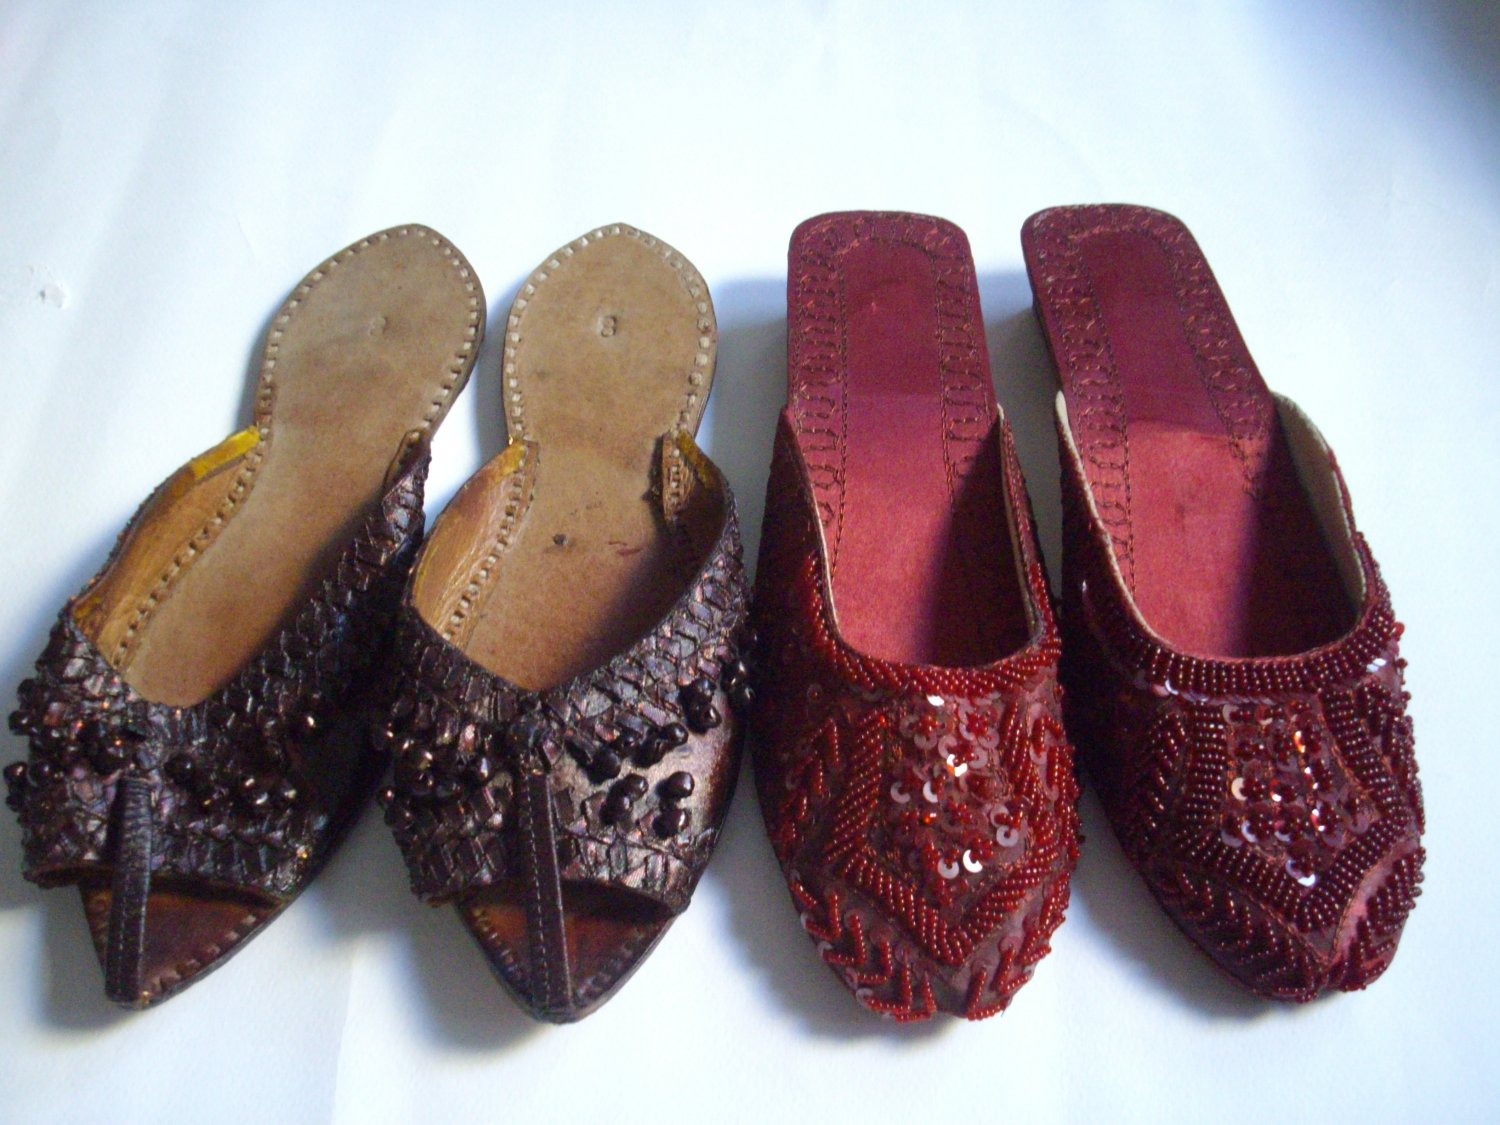 Shoes (Ref: WS-002)